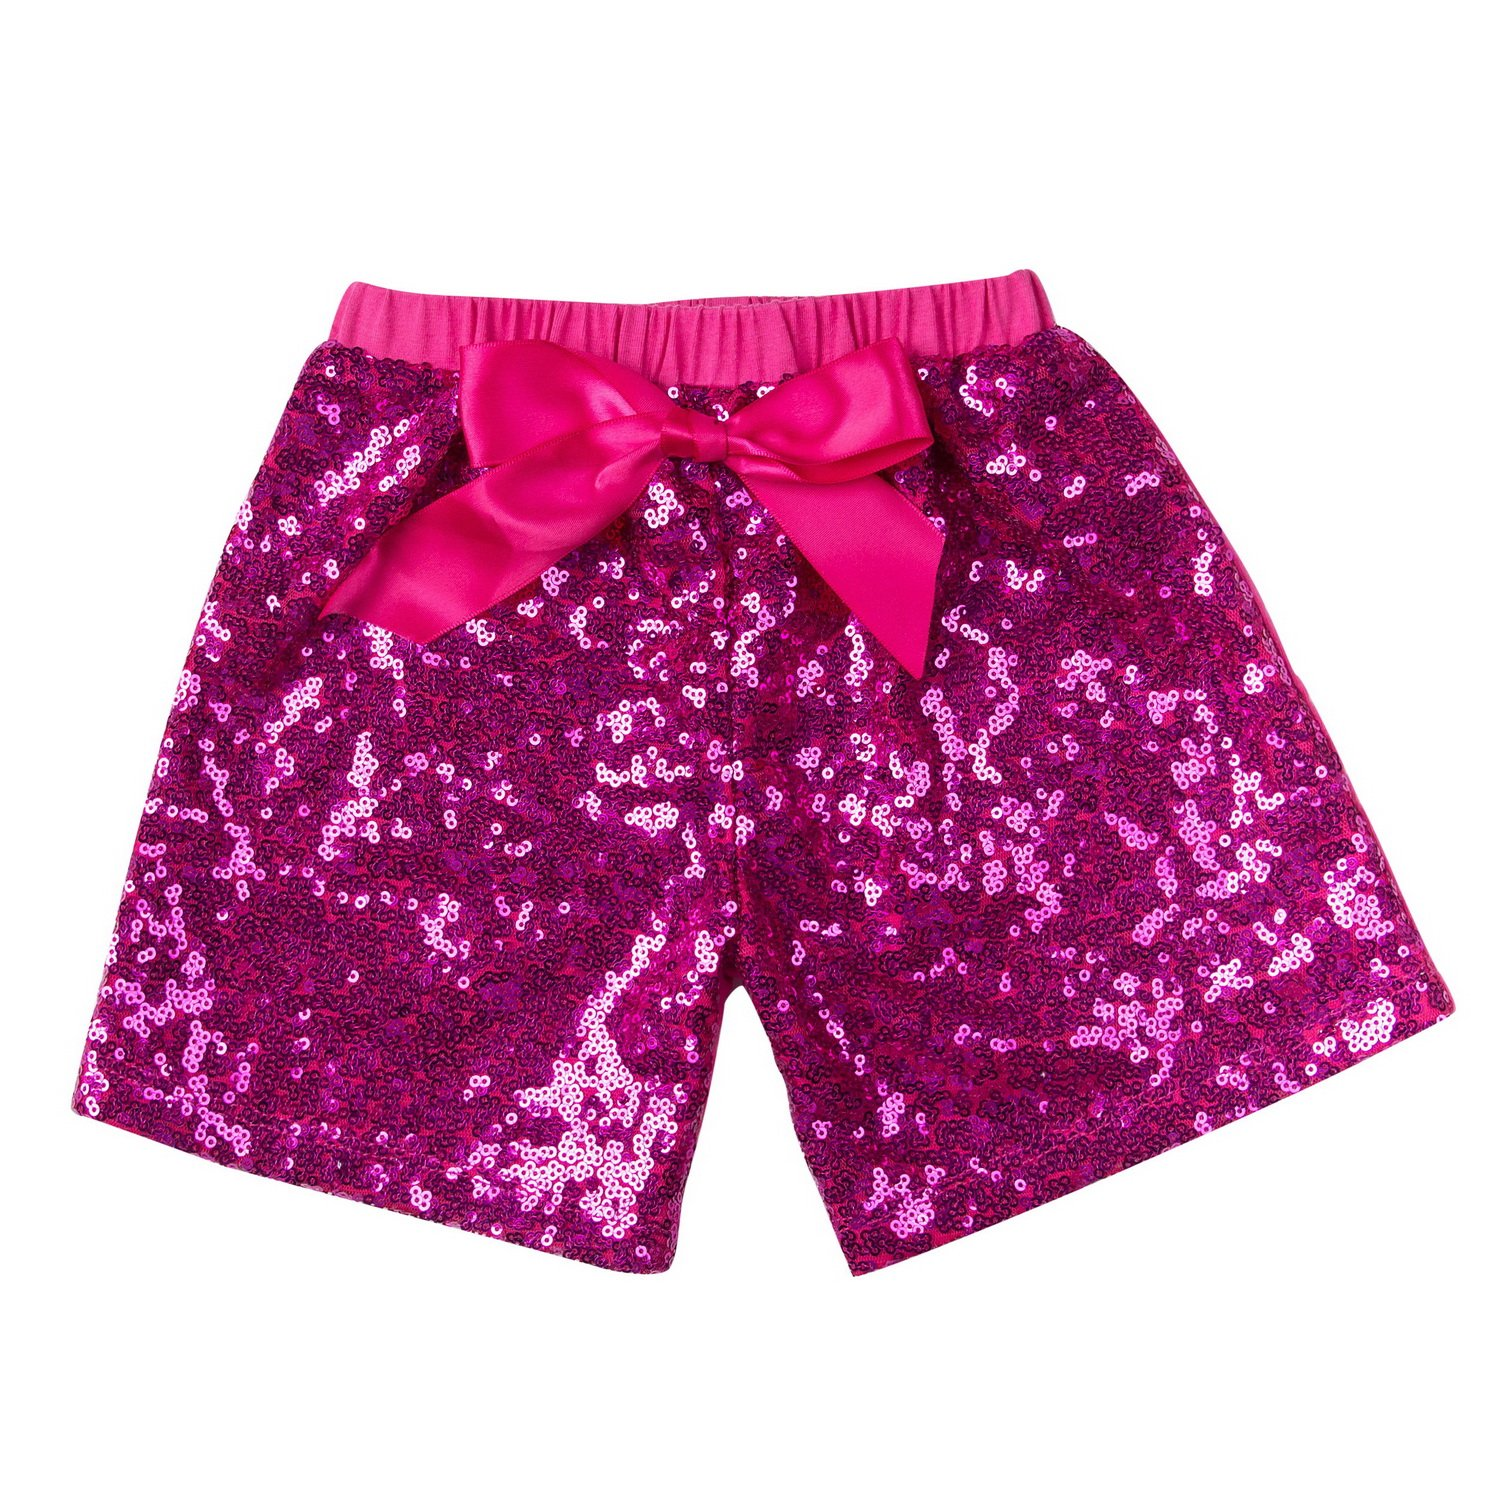 Messy Code Baby Girls Shorts Toddlers Short Sequin Pants Newborn Clothes with Bow,Hot Pink,XXL(4-5Y)